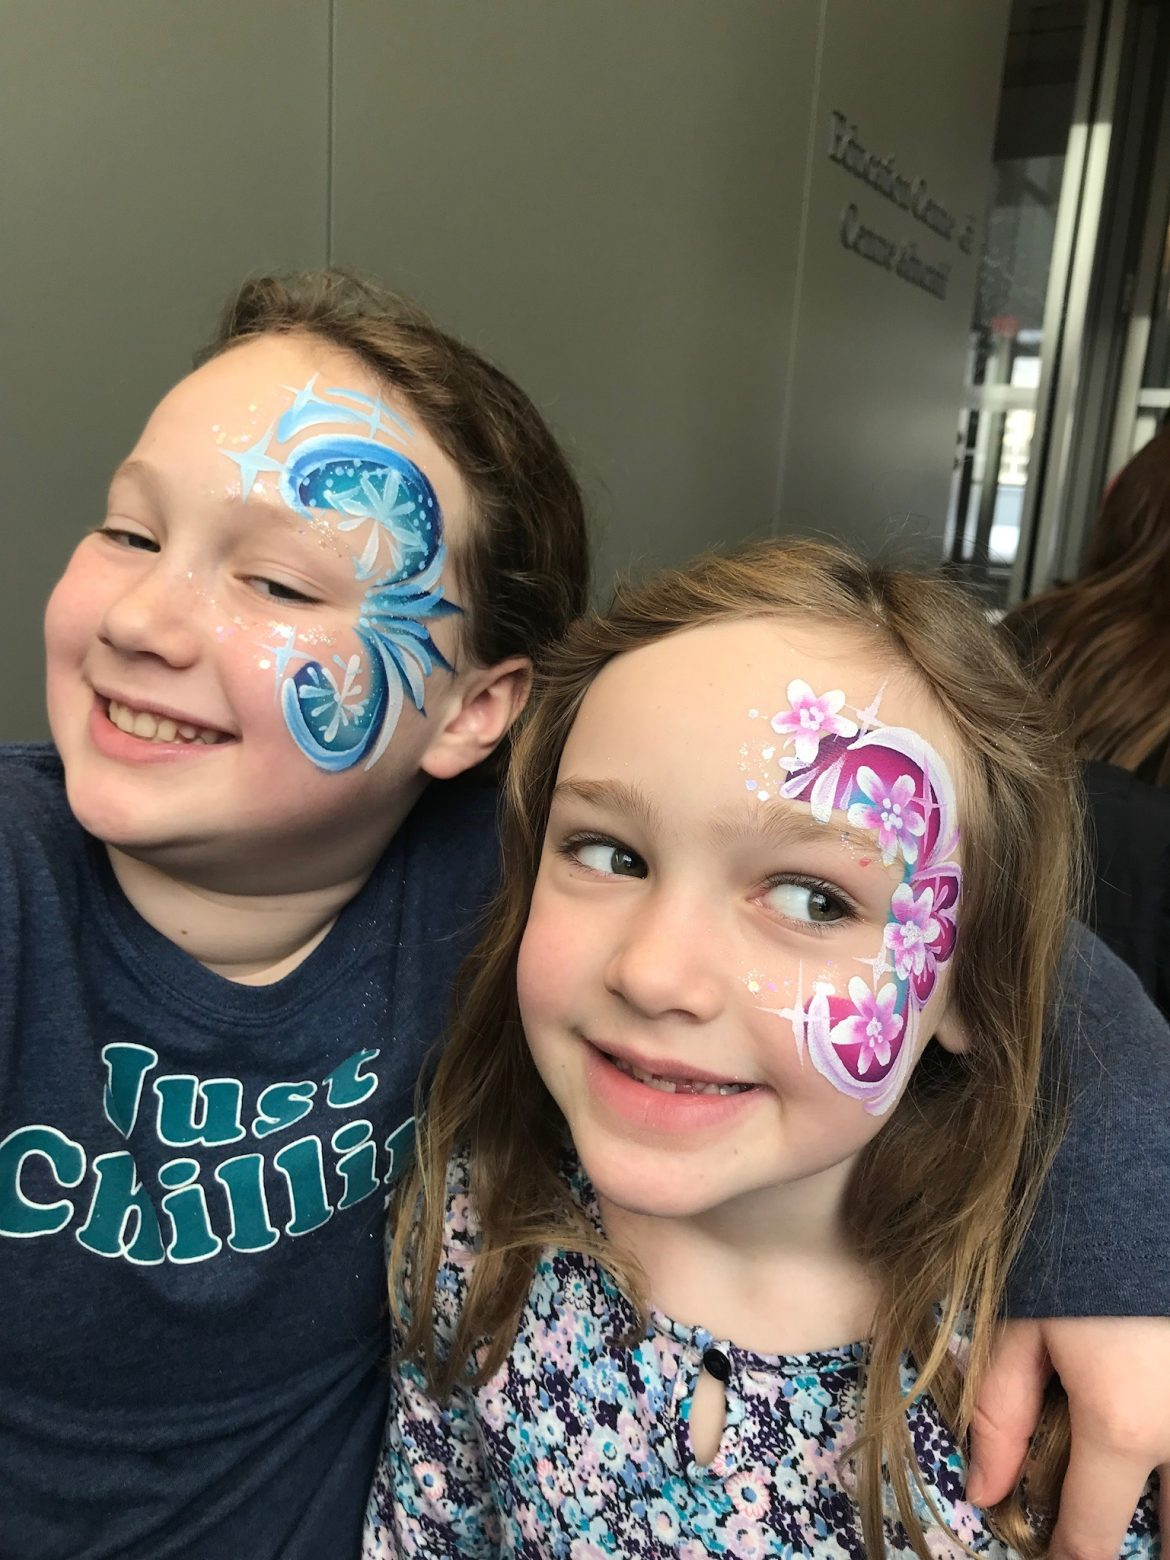 Blue and pink designs painted on children's faces